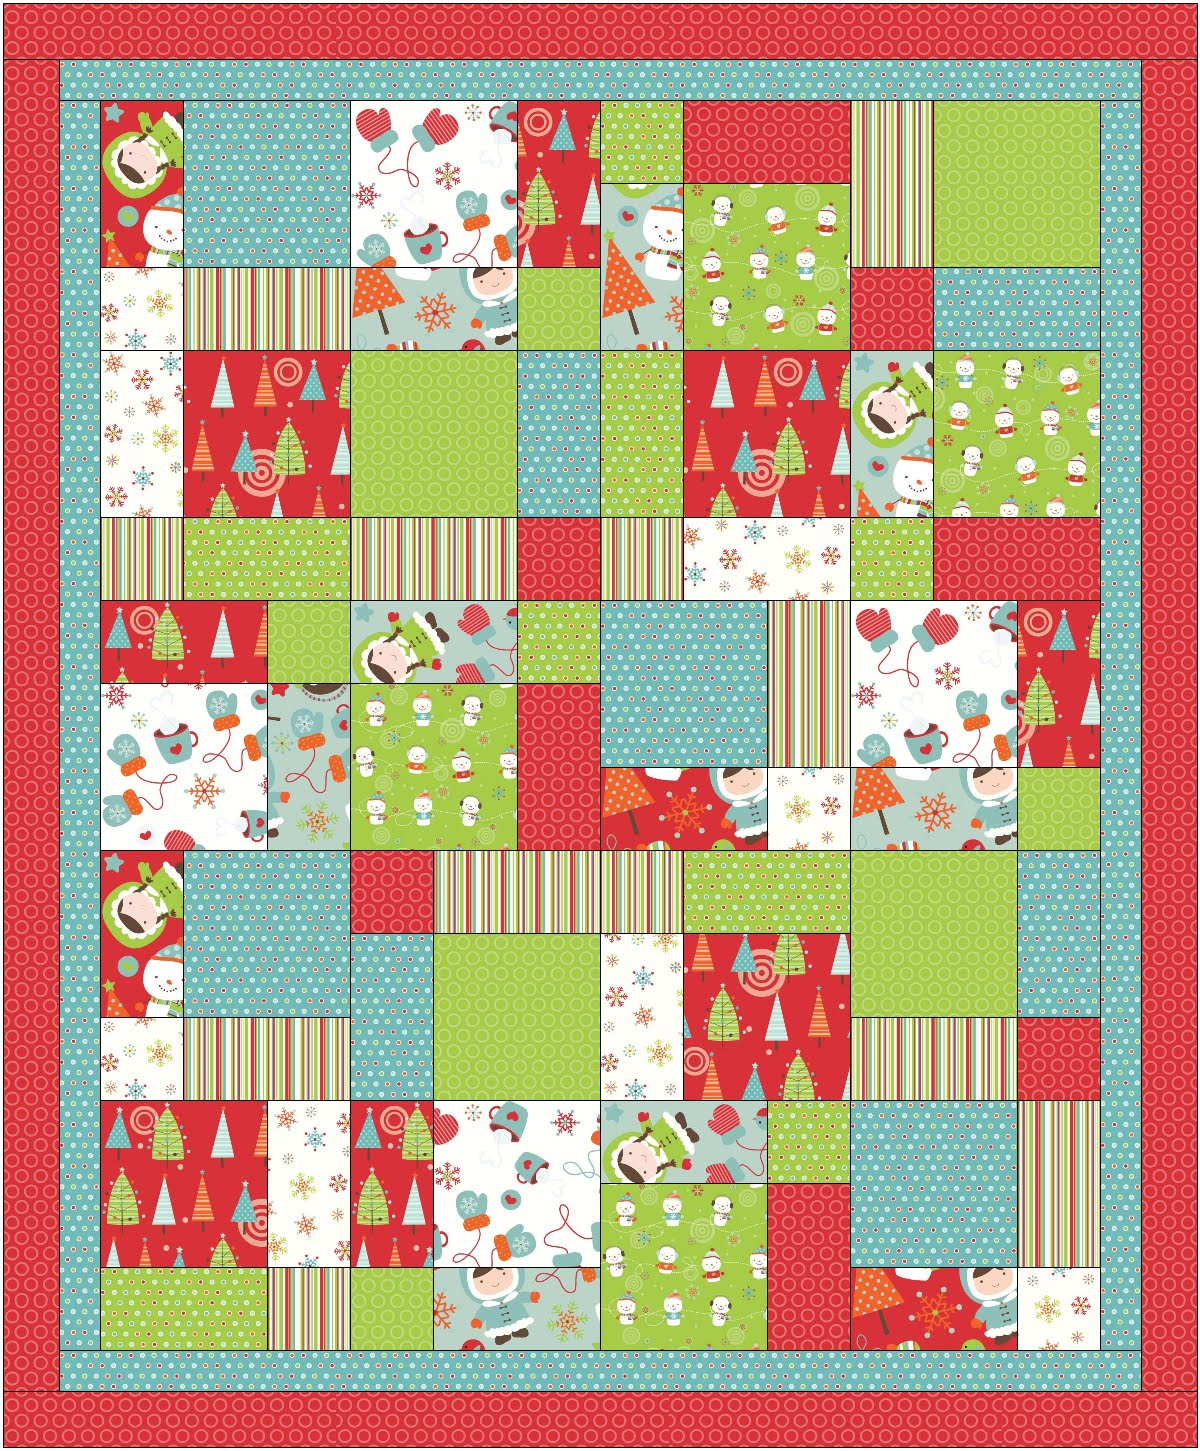 Quilt Patterns For 20 Fat Quarters : Fabric Mill: September 2010